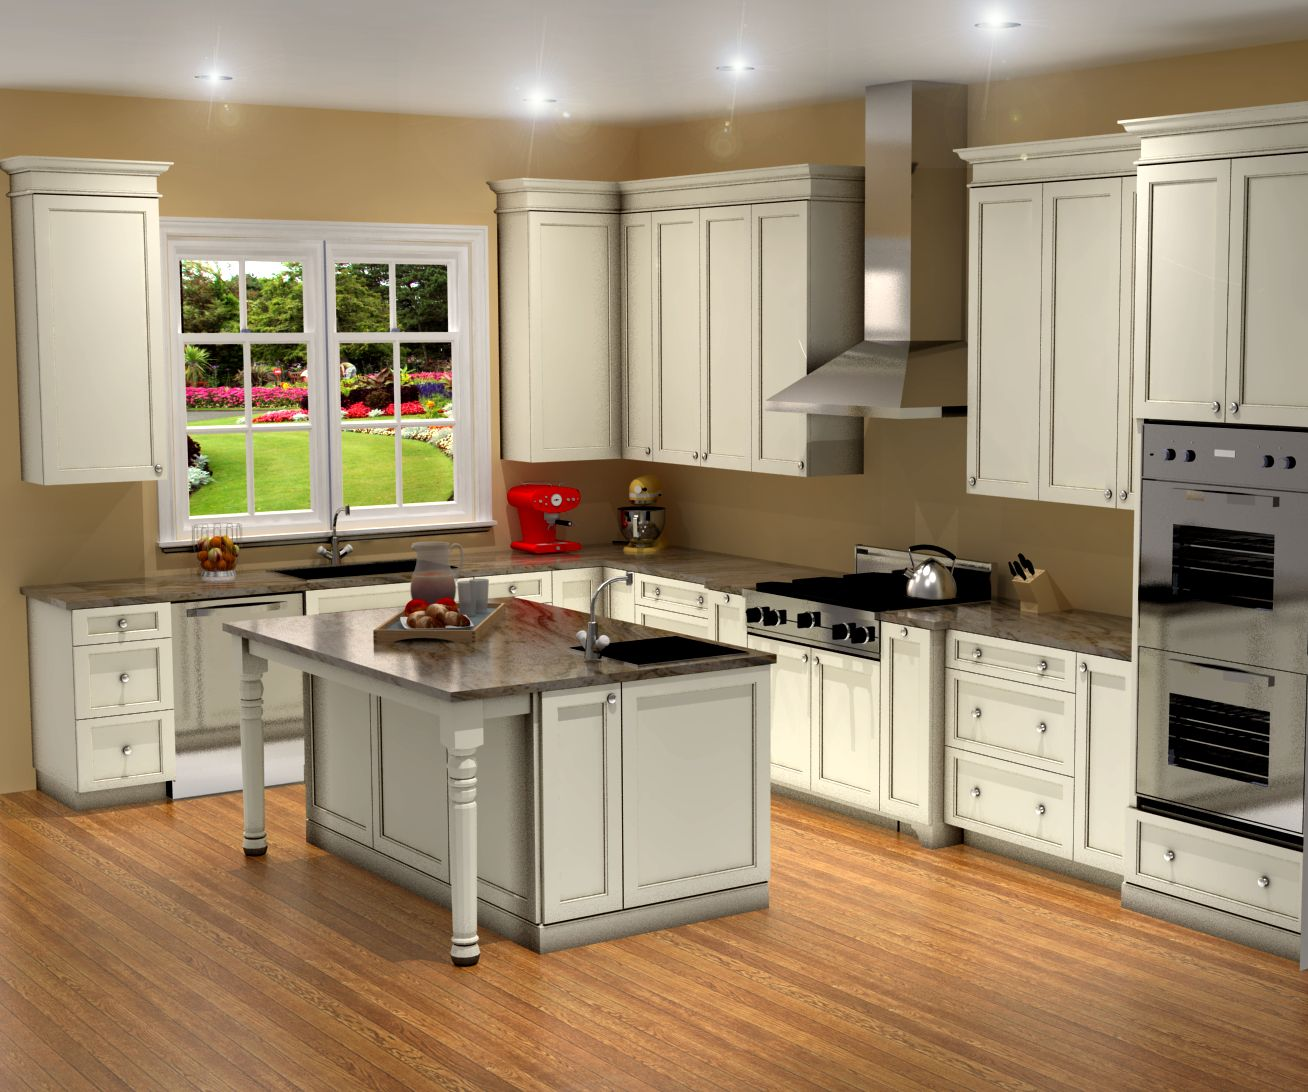 Traditional white kitchen design 3d rendering nick miller design - Kitchen designs images ...